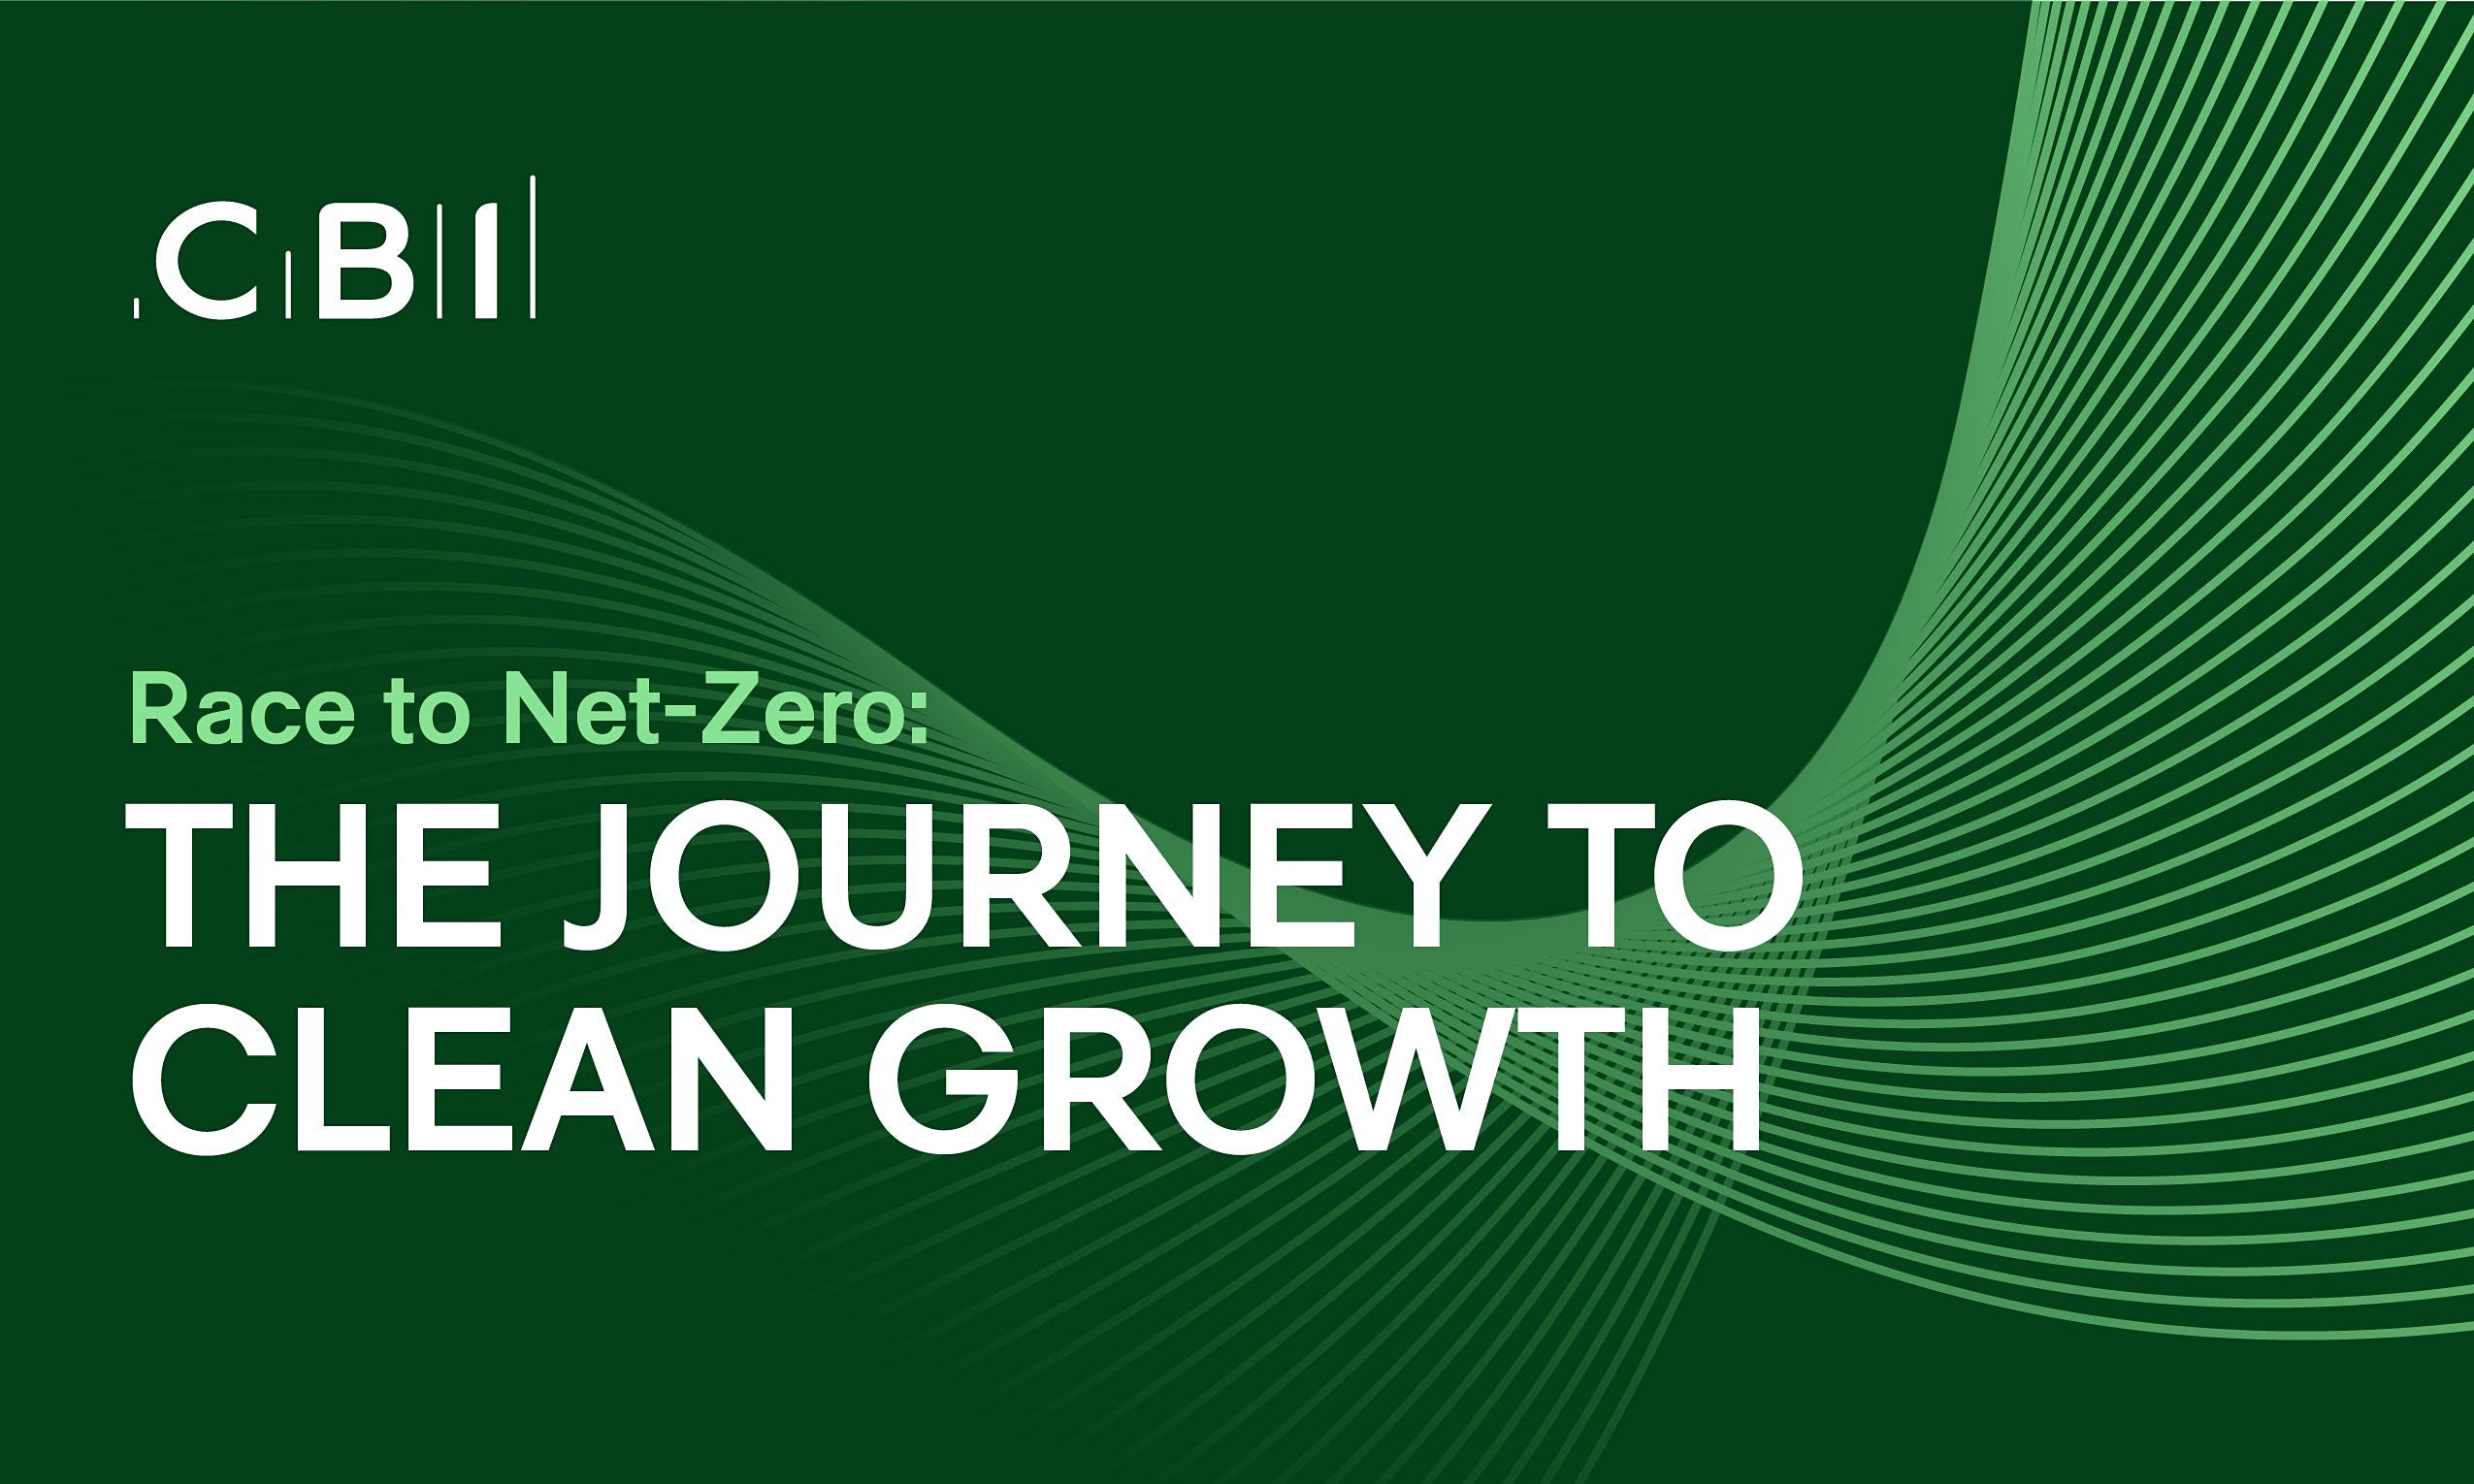 Race to Net-Zero: The Journey to Clean Growth